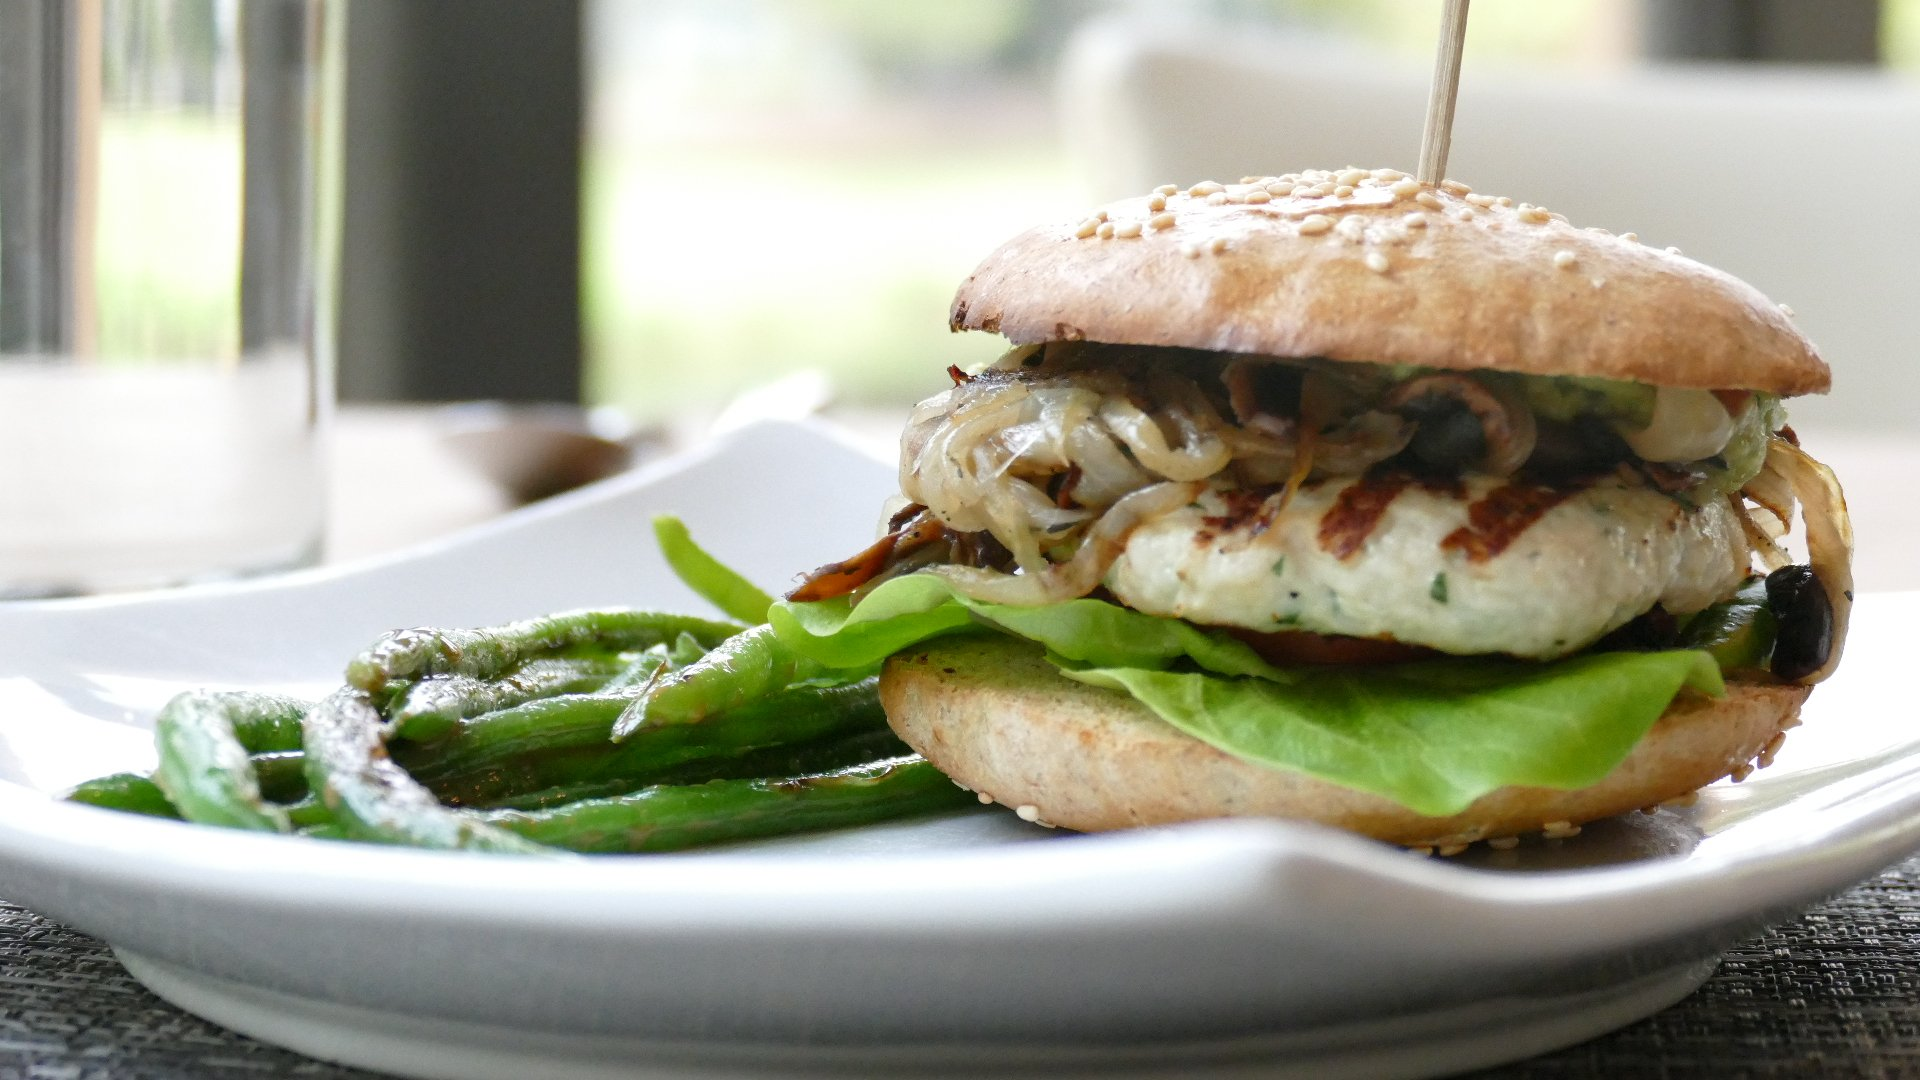 H3's Turkey Burger is simple and flavorful